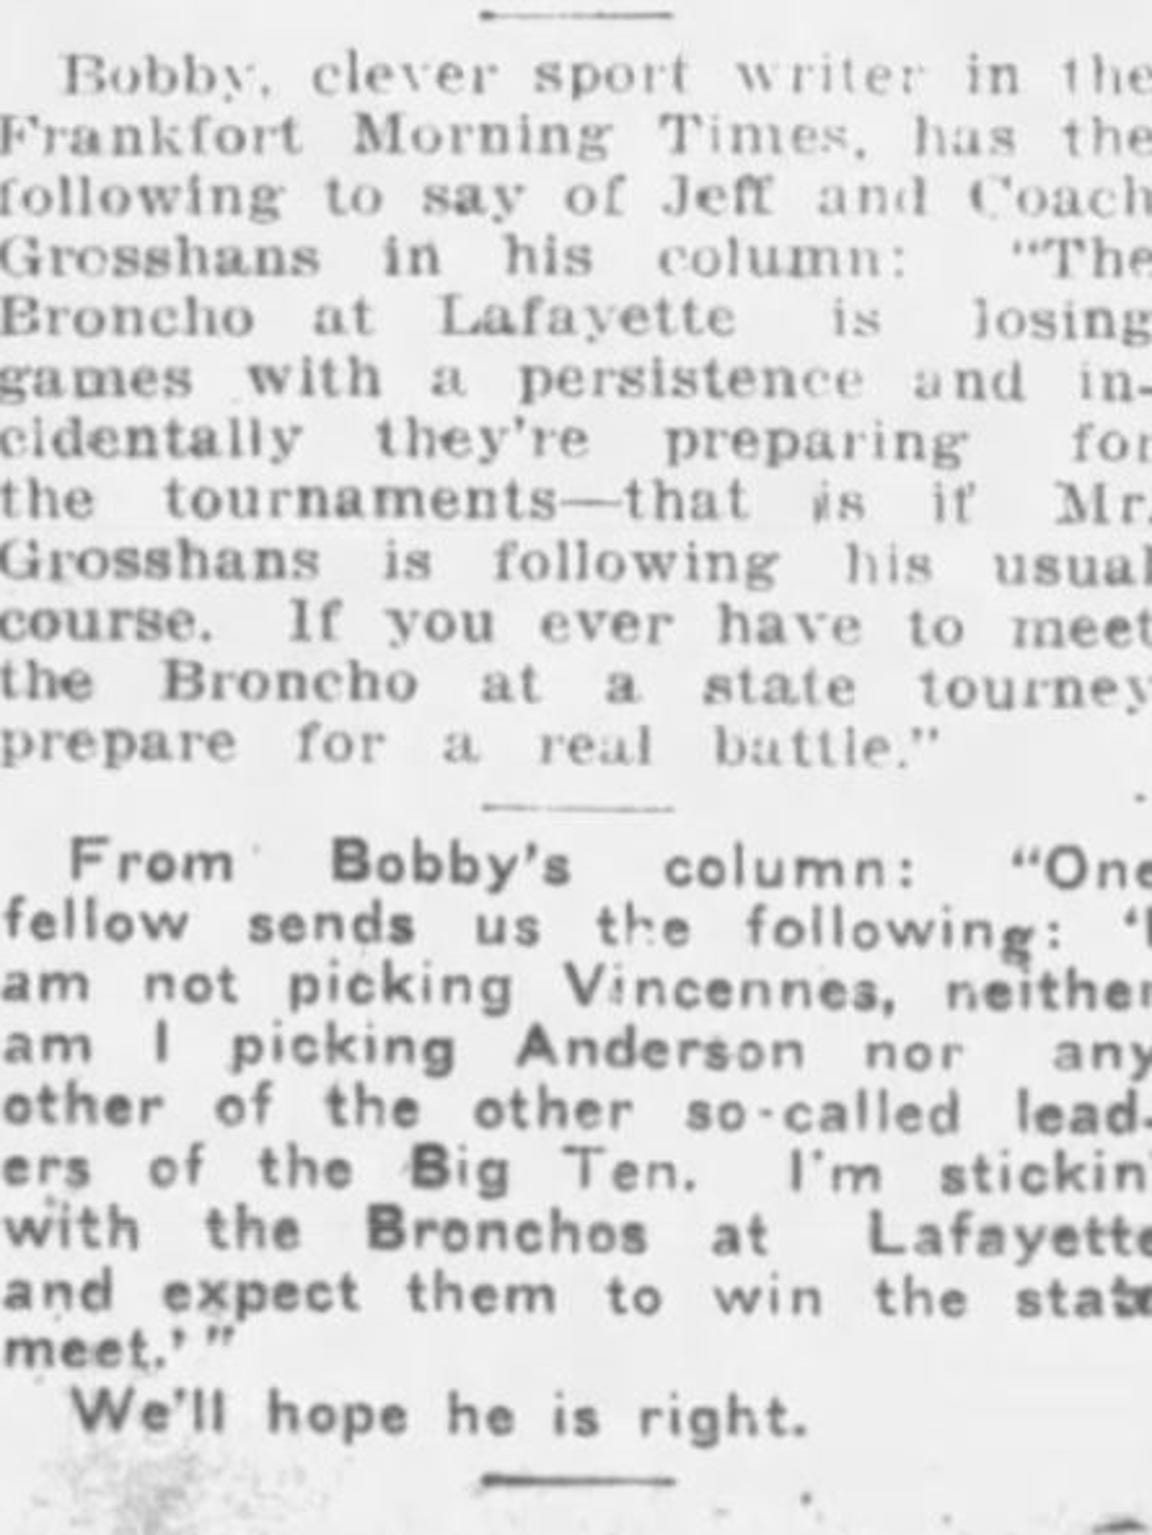 By 1923, rivals were calling Lafayette Jeff teams by